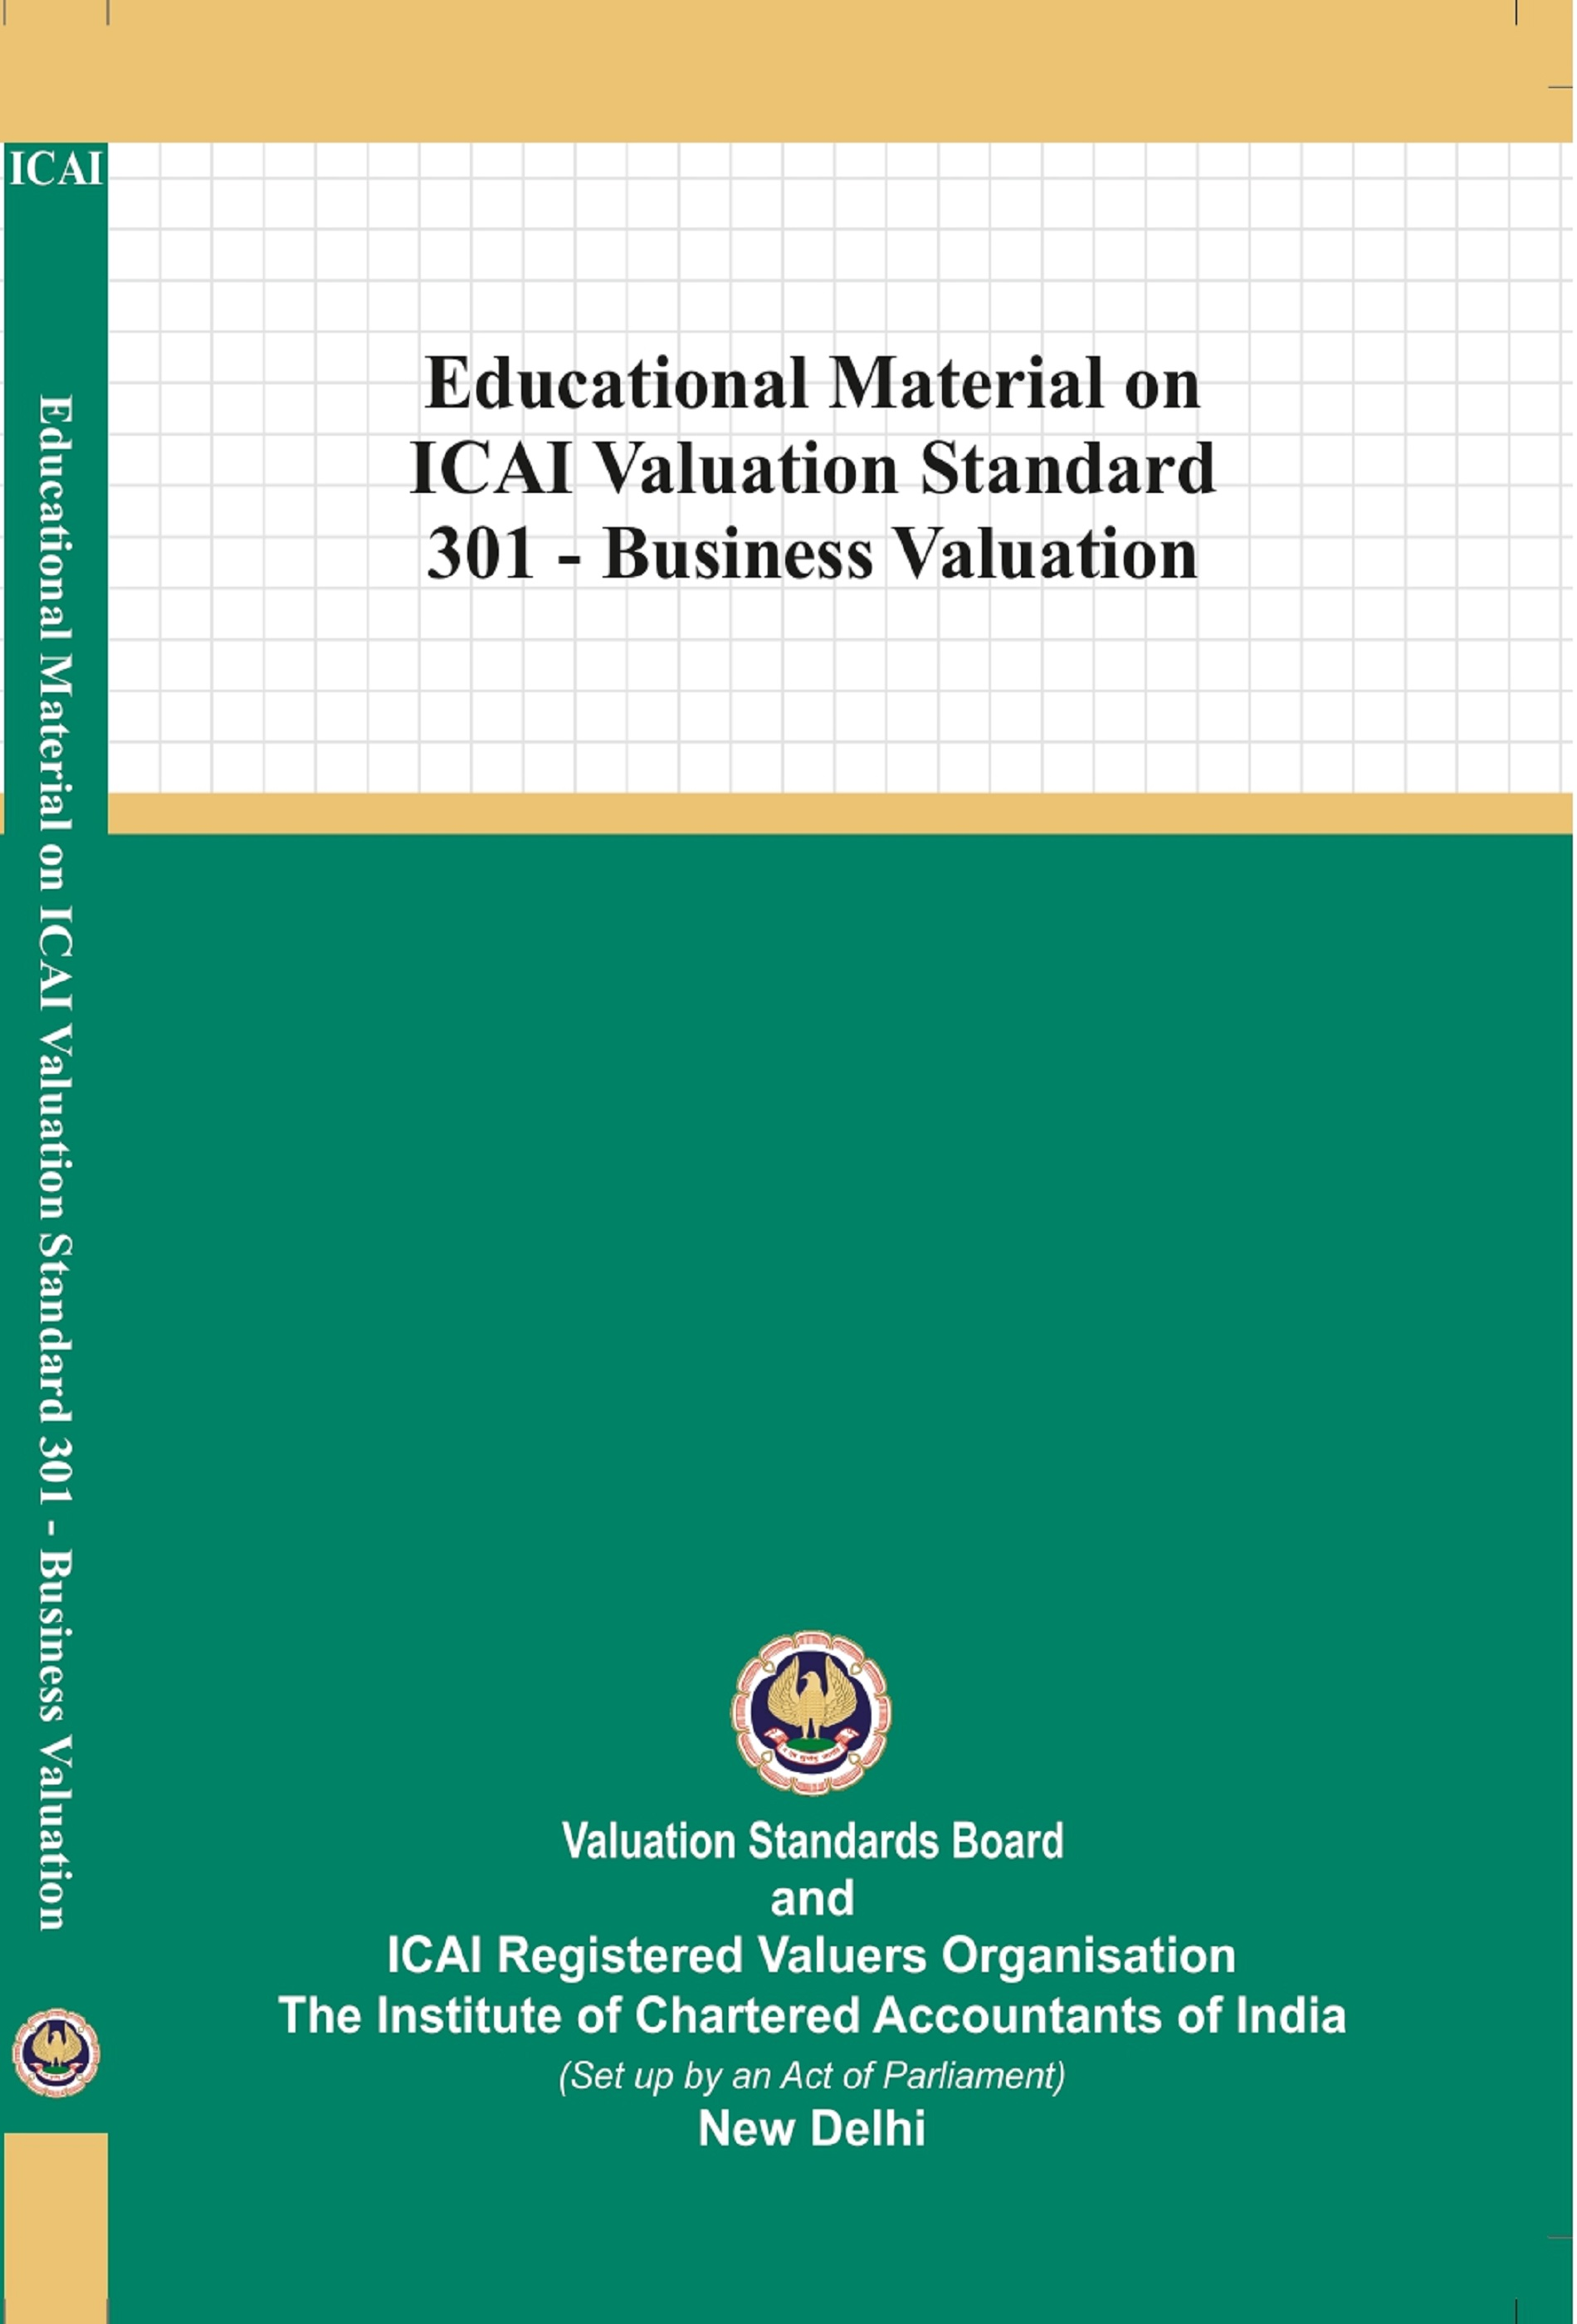 Educational Material on ICAI Valuation Standard 301 - Business Valuation (February, 2021)